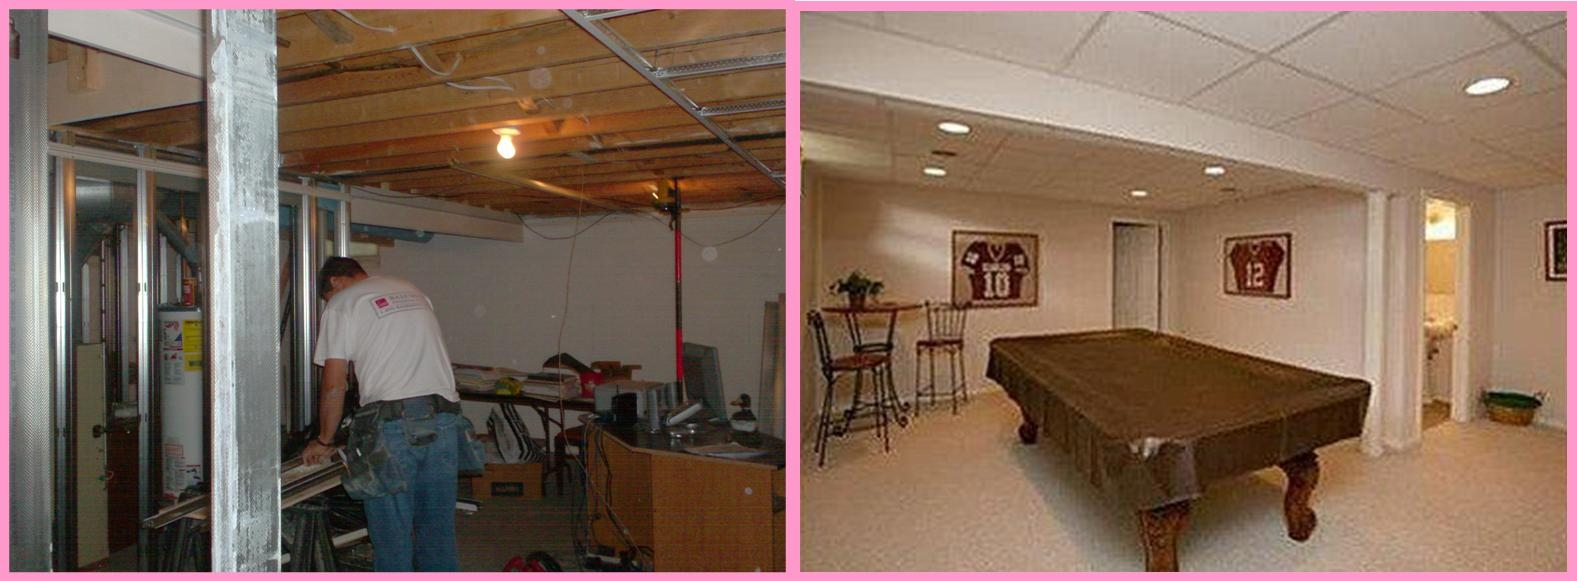 Finished Basement Before And After Pictures